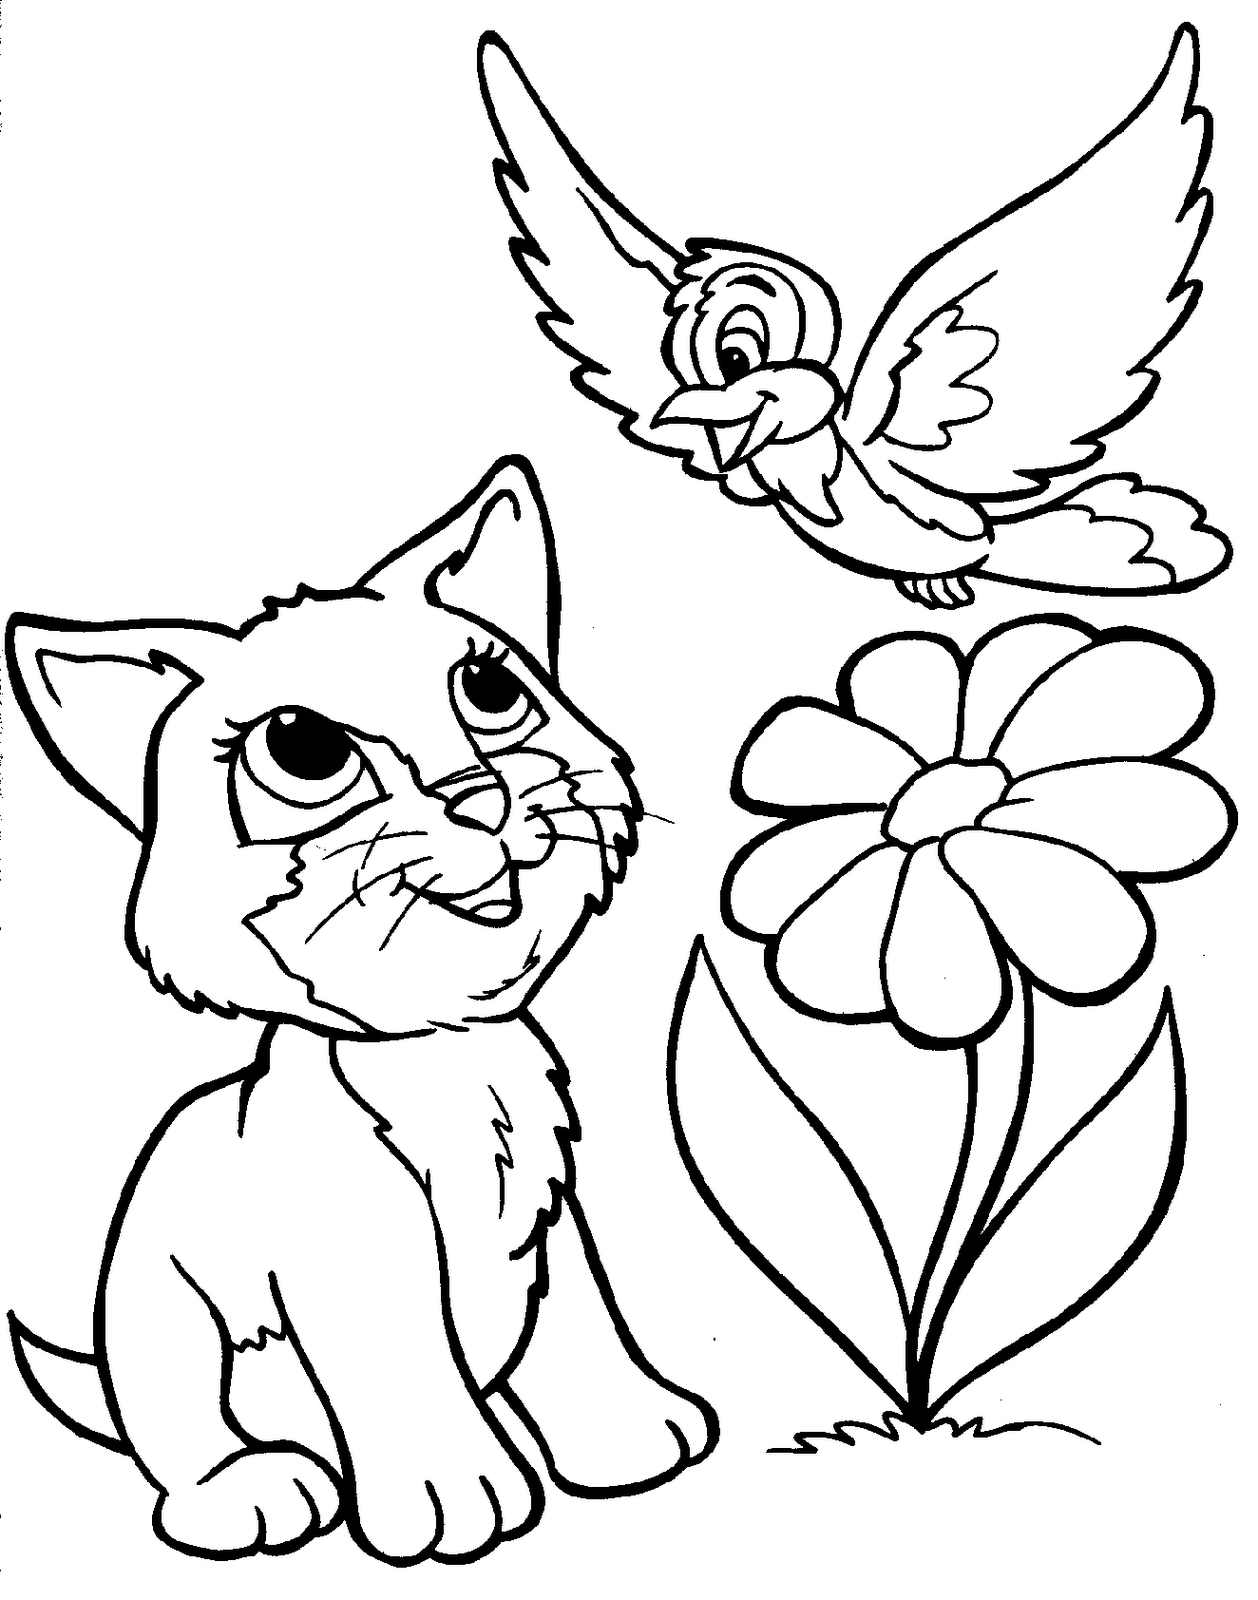 cute coloring pages animals funny animals coloring page cute dog coloring pages coloring animals pages cute